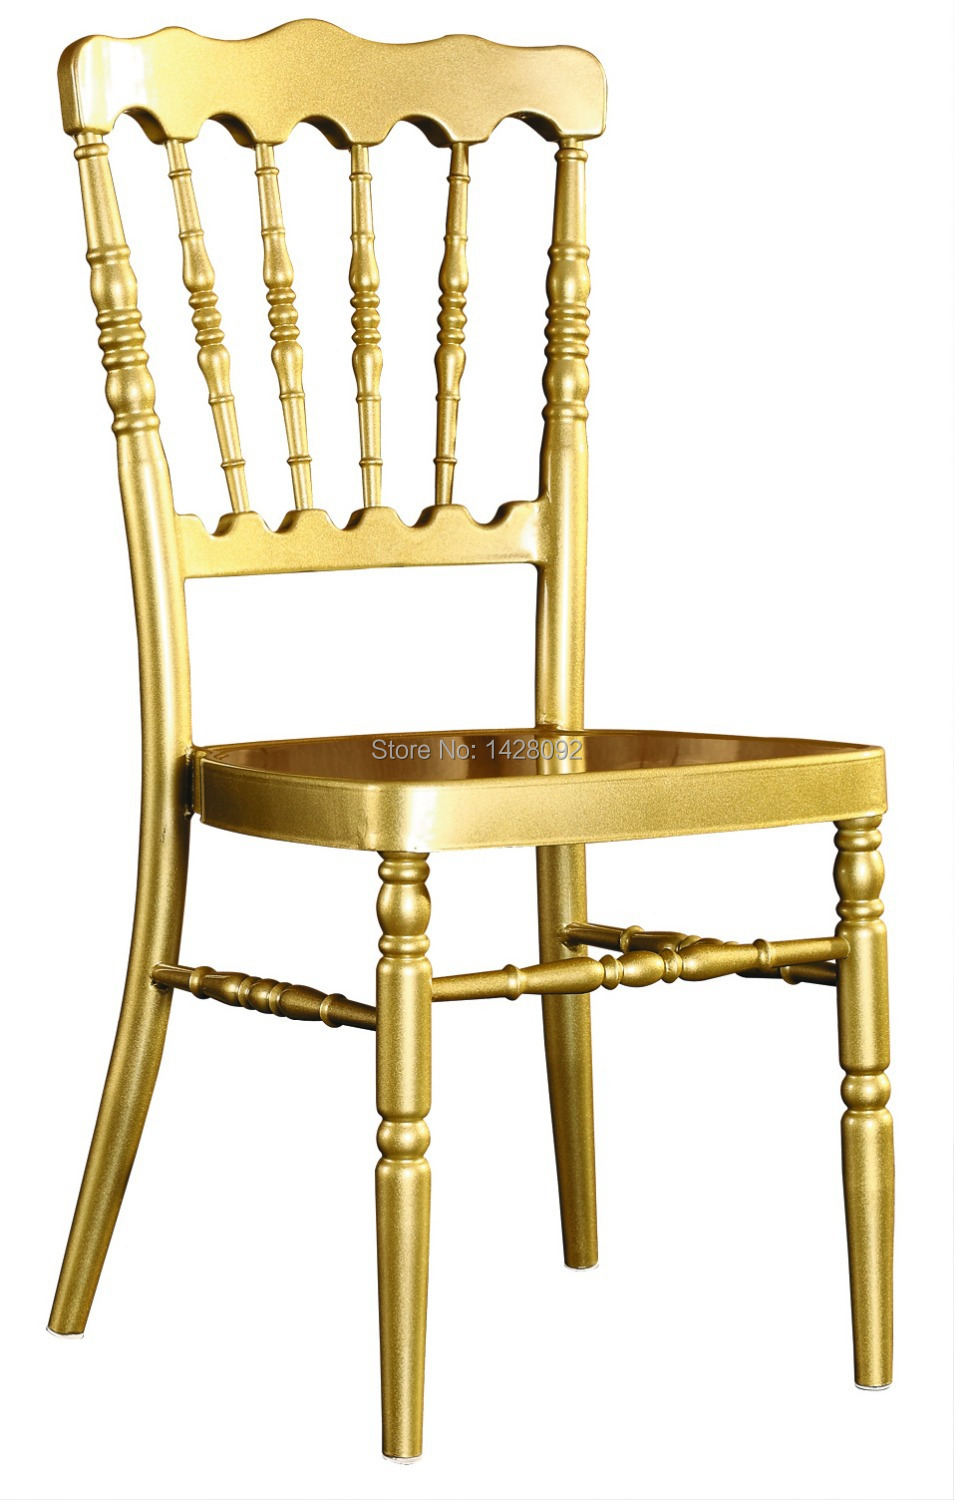 Us 39 9 Wholesale Quality Strong Gold Aluminum Napoleon Chair For Wedding Events Party In Hotel Chairs From Furniture On Aliexpress